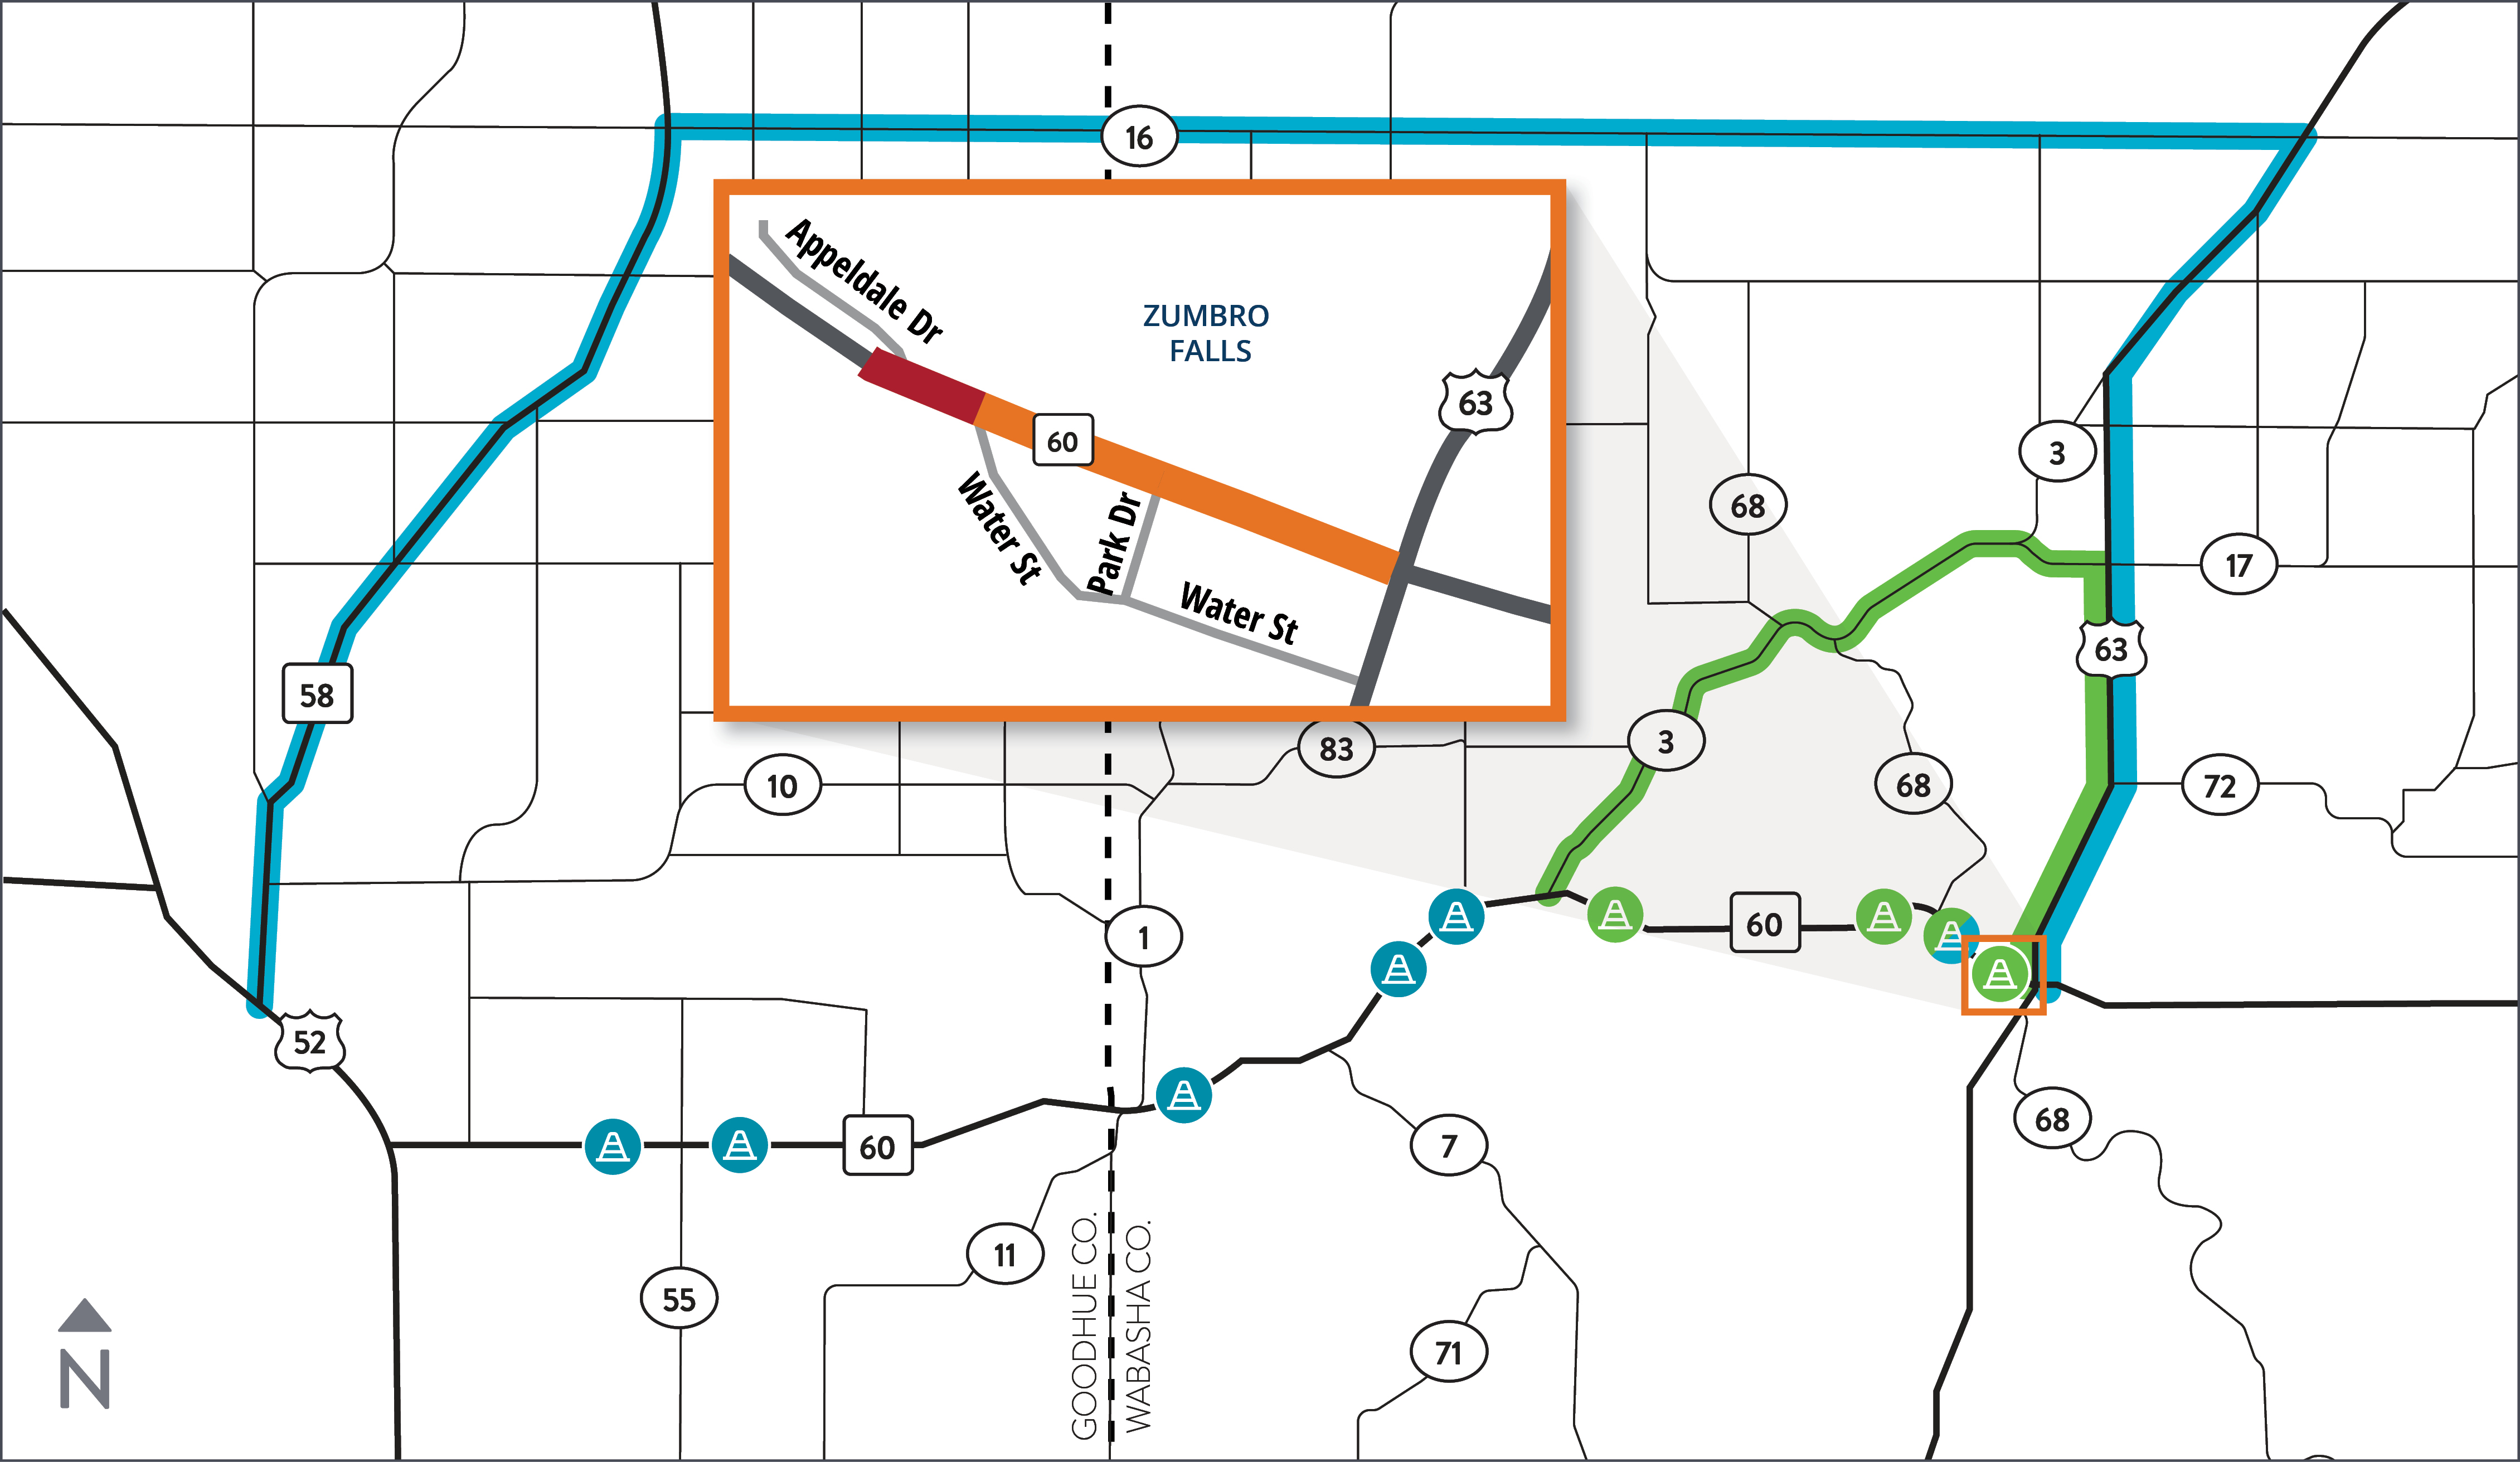 Map of Hwy 60 construction project location